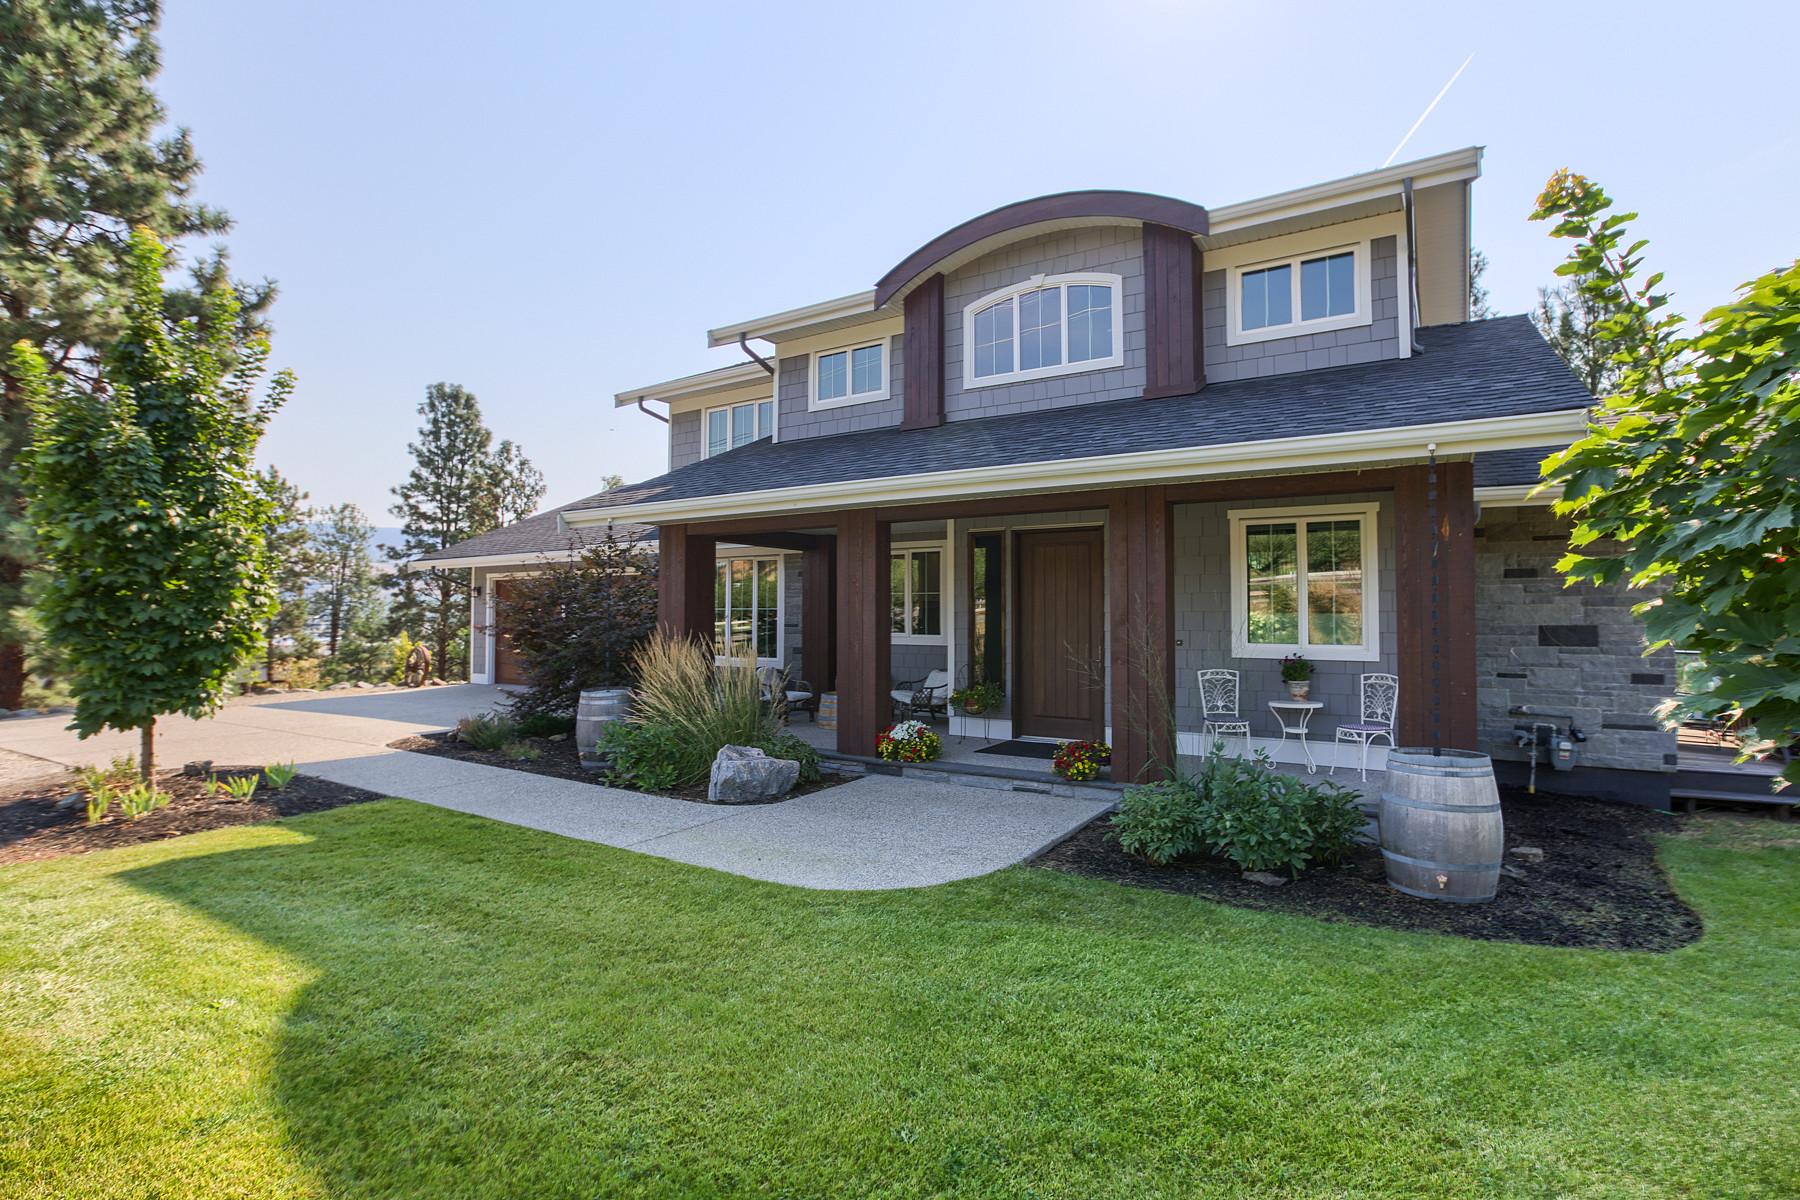 Single Family Home for Sale at City Elegance Country Charm 2755 Longhill Road Kelowna, British Columbia, V1V2G5 Canada